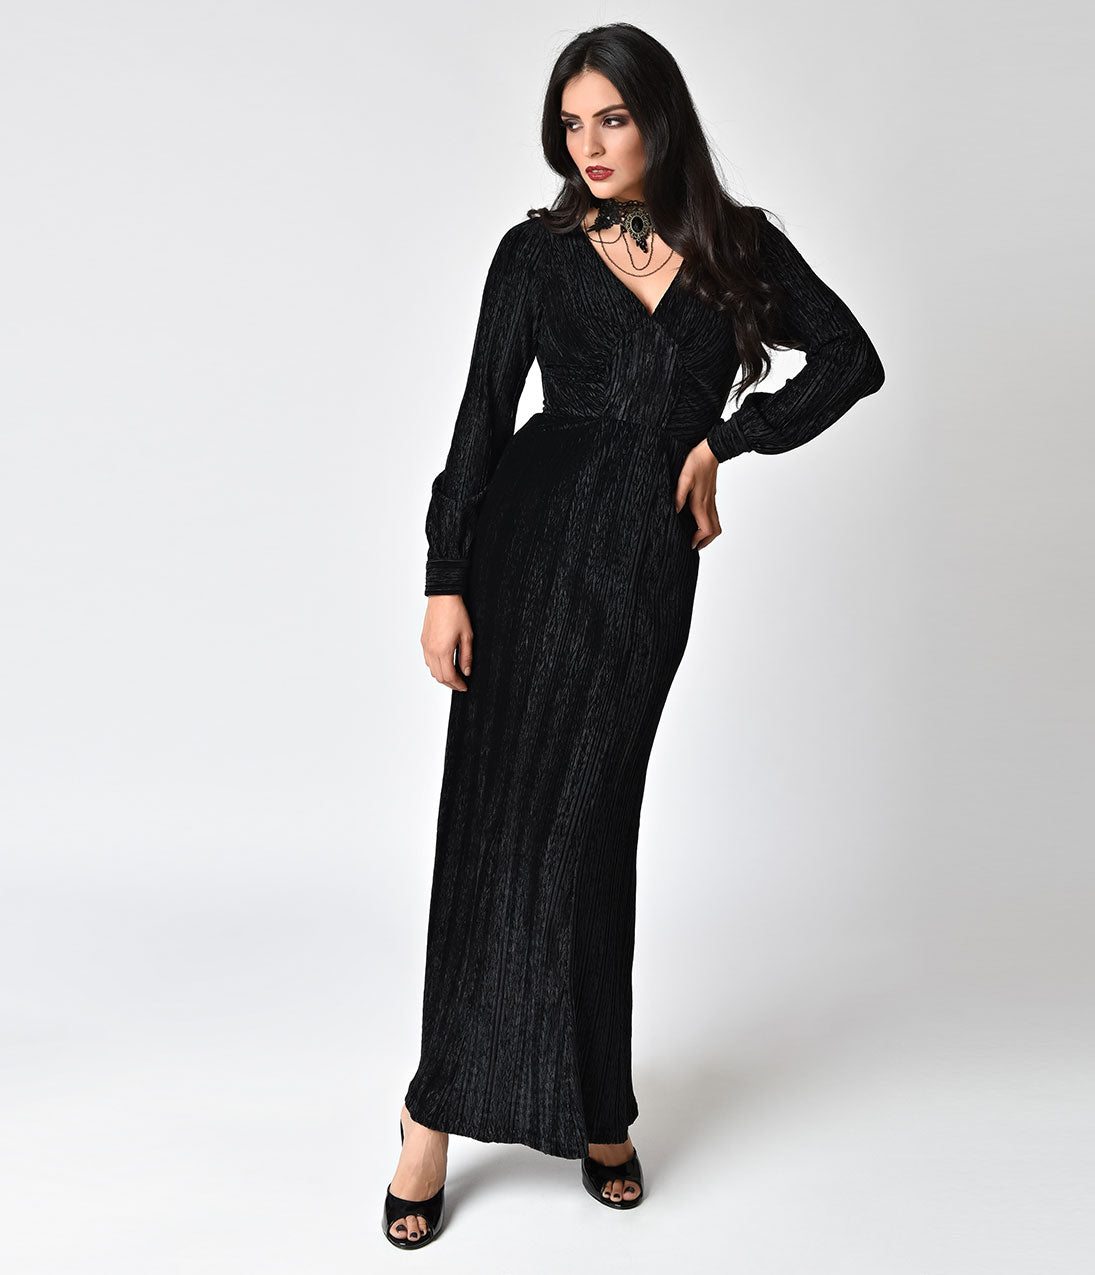 Easy DIY Edwardian Titanic Costumes 1910-1915 Voodoo Vixen 1930S Style Jet Black Velvet Long Sleeve Maxi Dress $78.00 AT vintagedancer.com